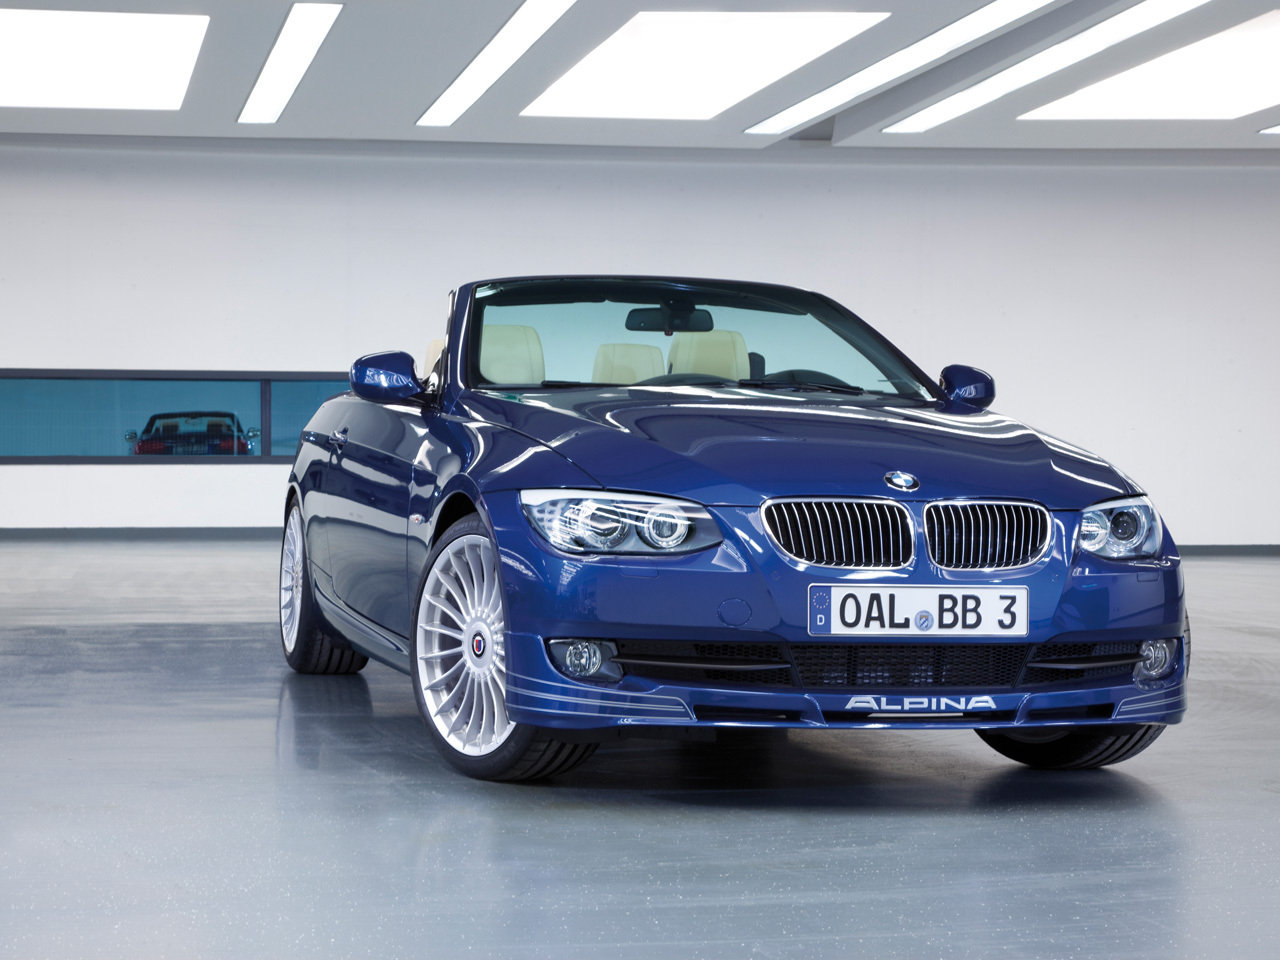 2010 bmw alpina b3 s biturbo picture 351630 car review. Black Bedroom Furniture Sets. Home Design Ideas